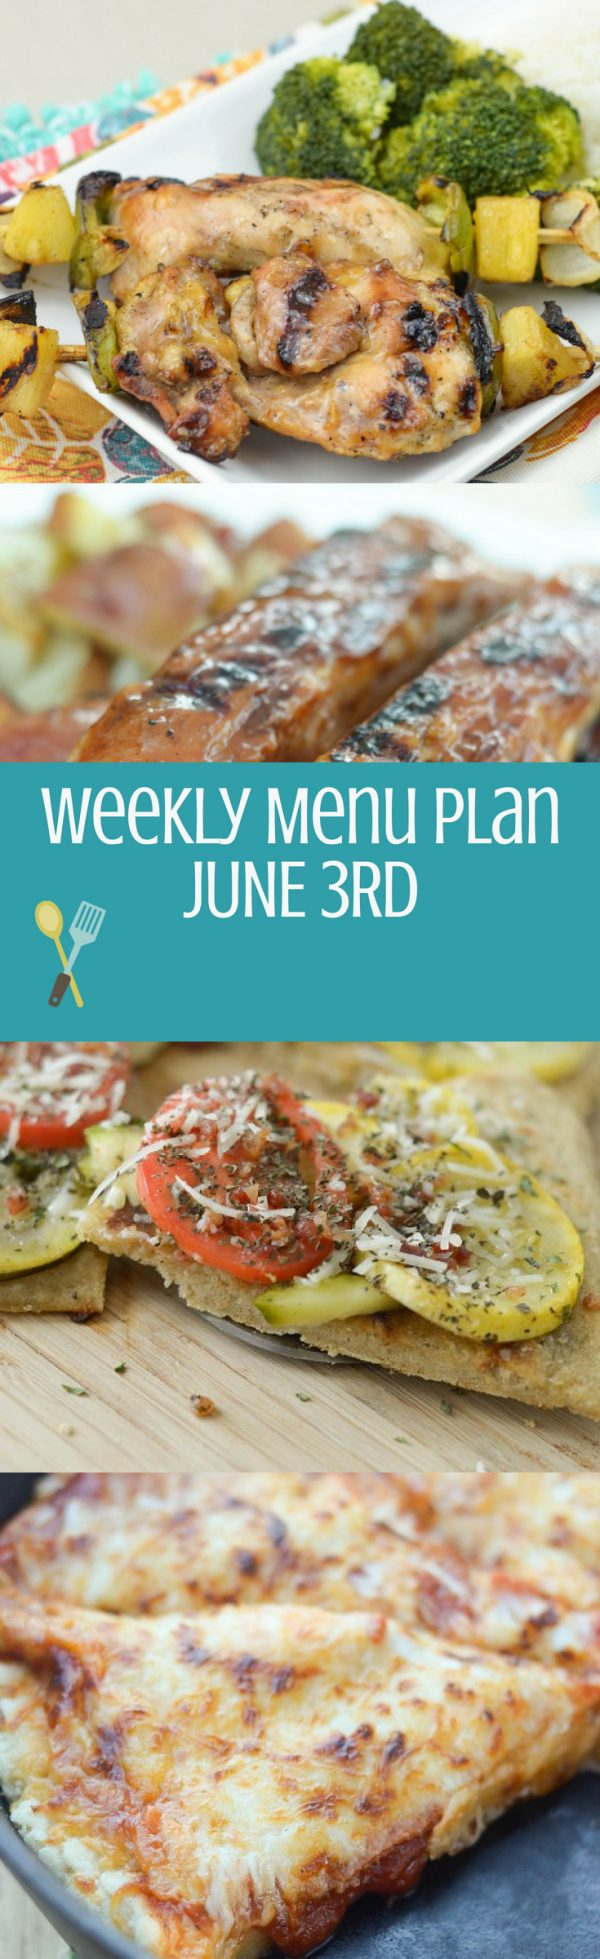 Weekly Menu Plan June 3rd